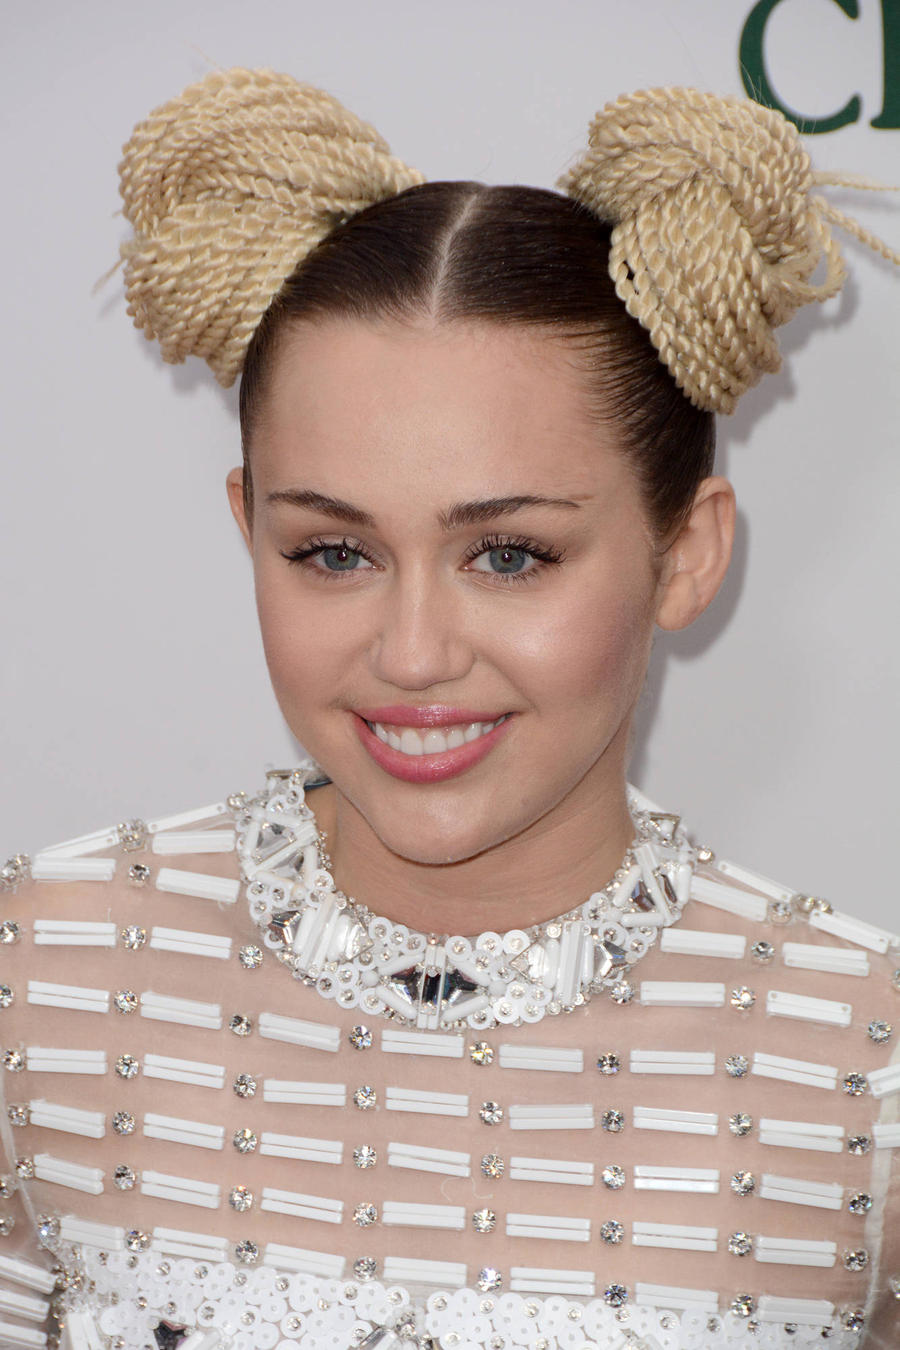 Hunter Targeted By Miley Cyrus 'Receiving Death Threats'